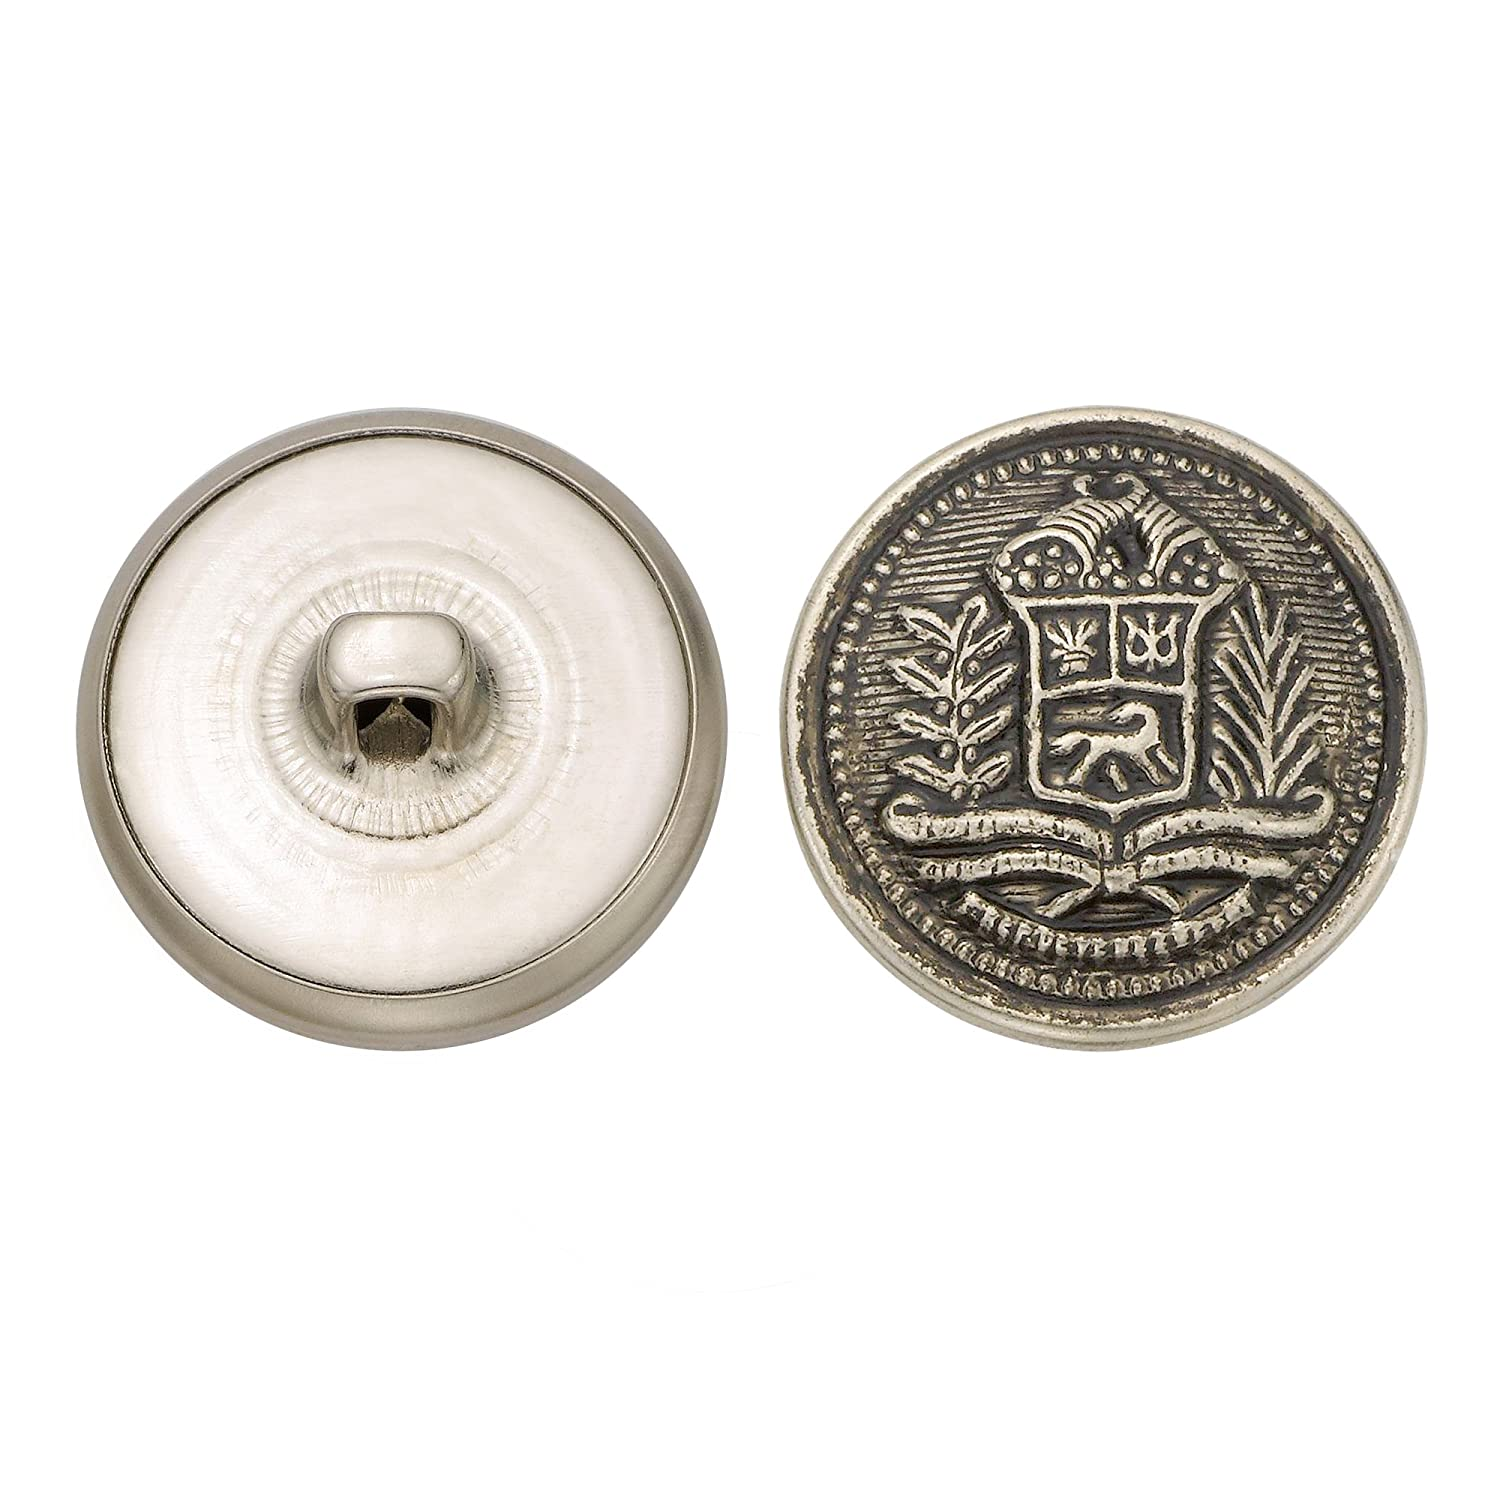 36-Pack C/&C Metal Products Corp Antique Nickel Size 36 Ligne C/&C Metal Products 5271 Crest Metal Button